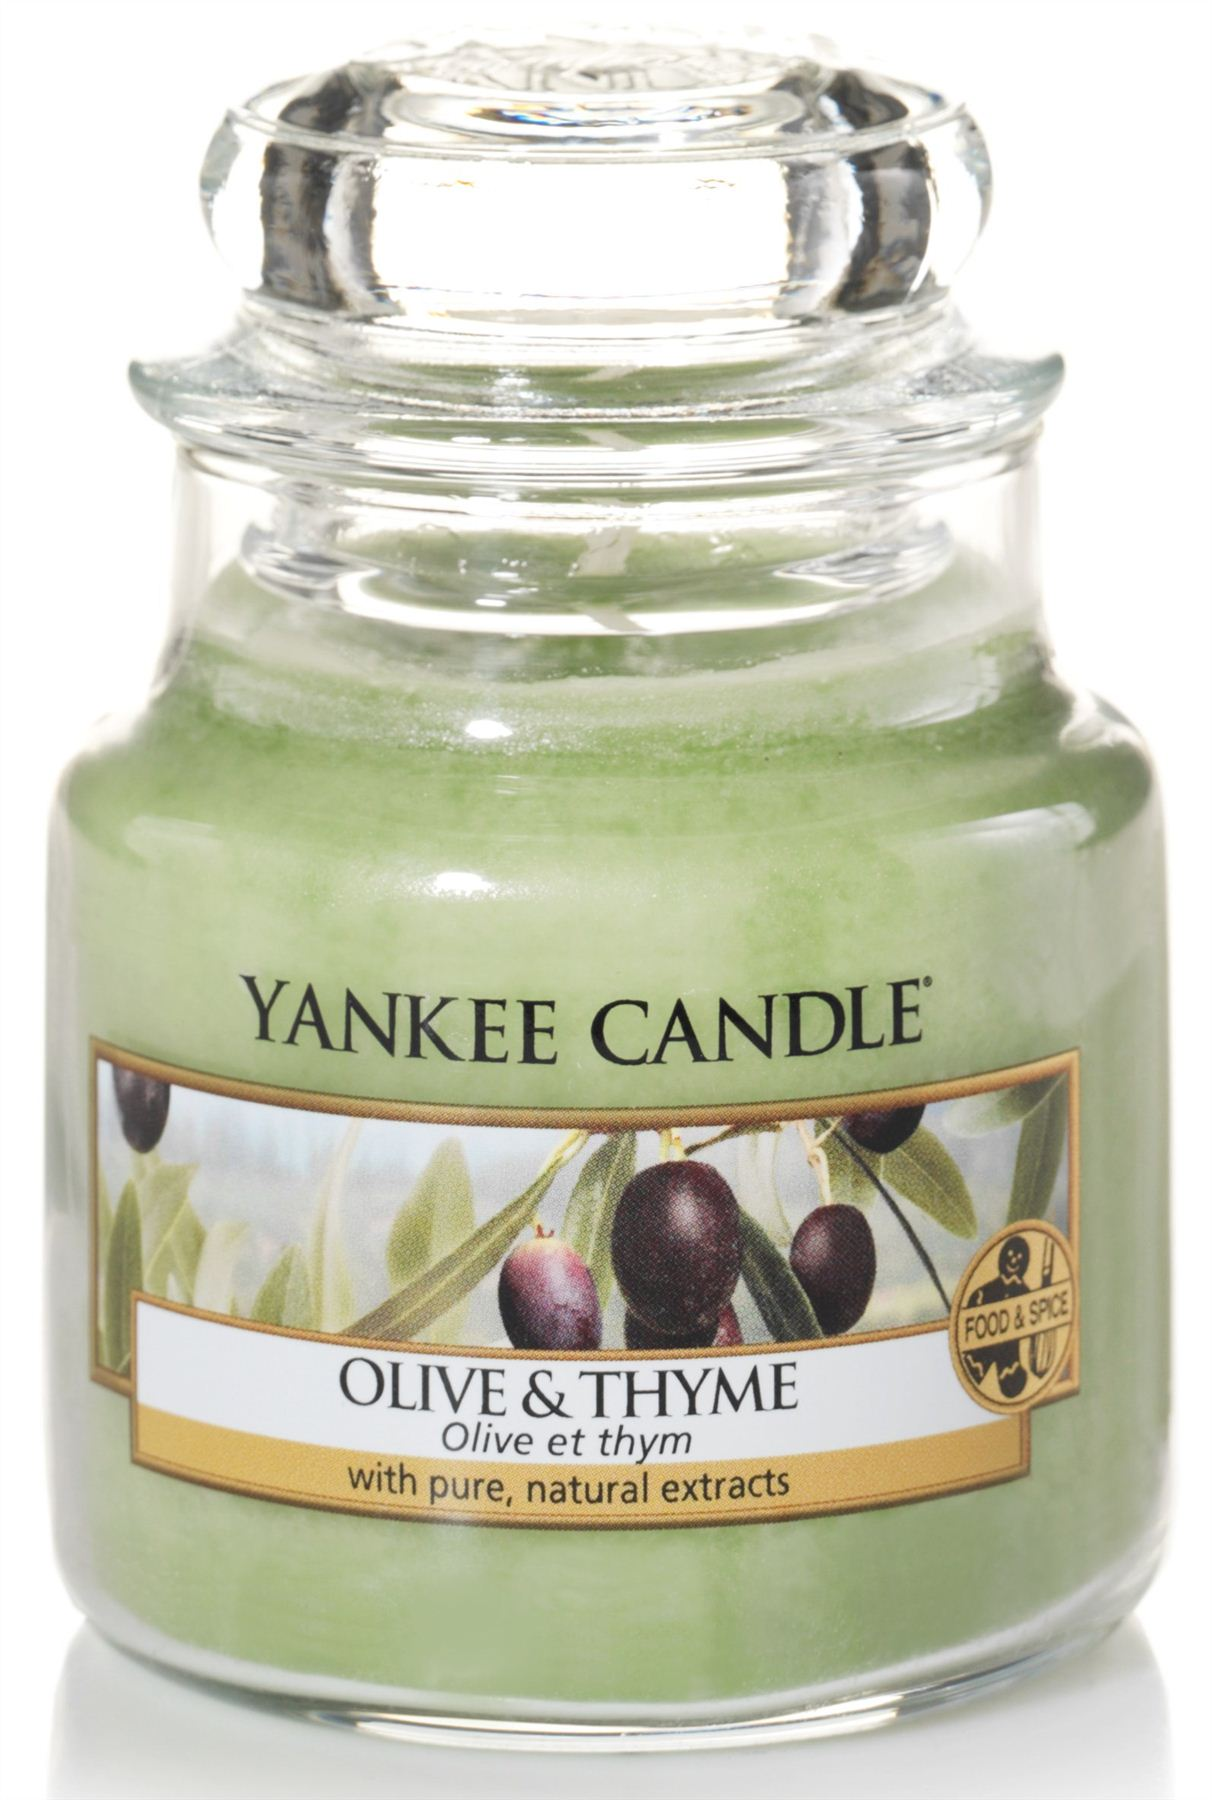 Yankee-Candle-Small-Jar-Classic-Housewarmer-Including-New-2018-Scents